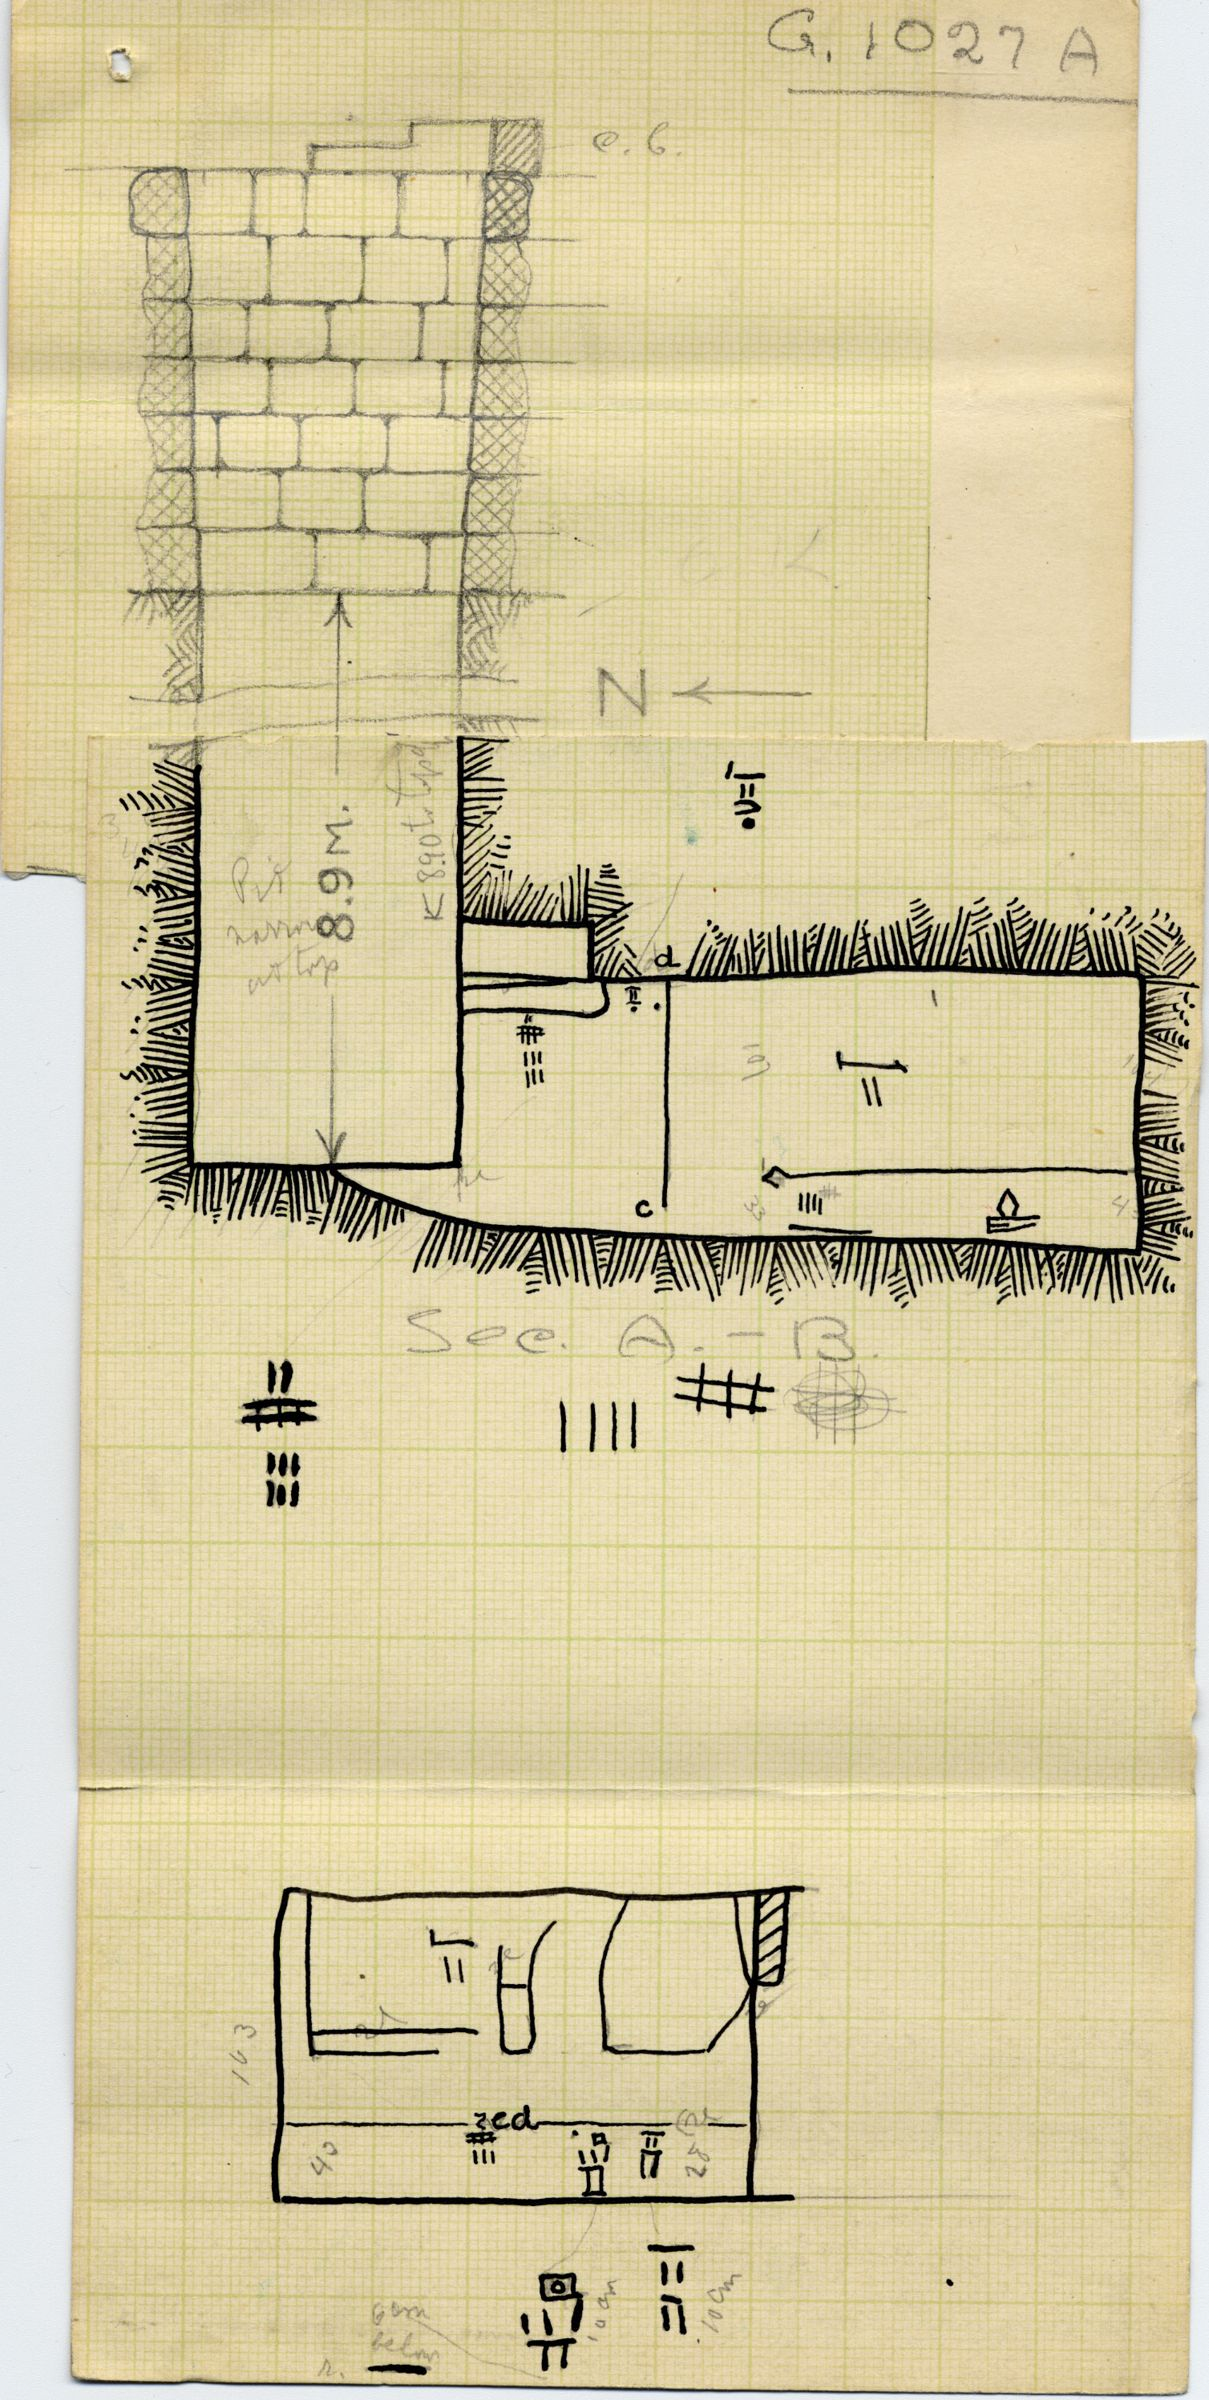 Maps and plans: G 1027, Shaft A